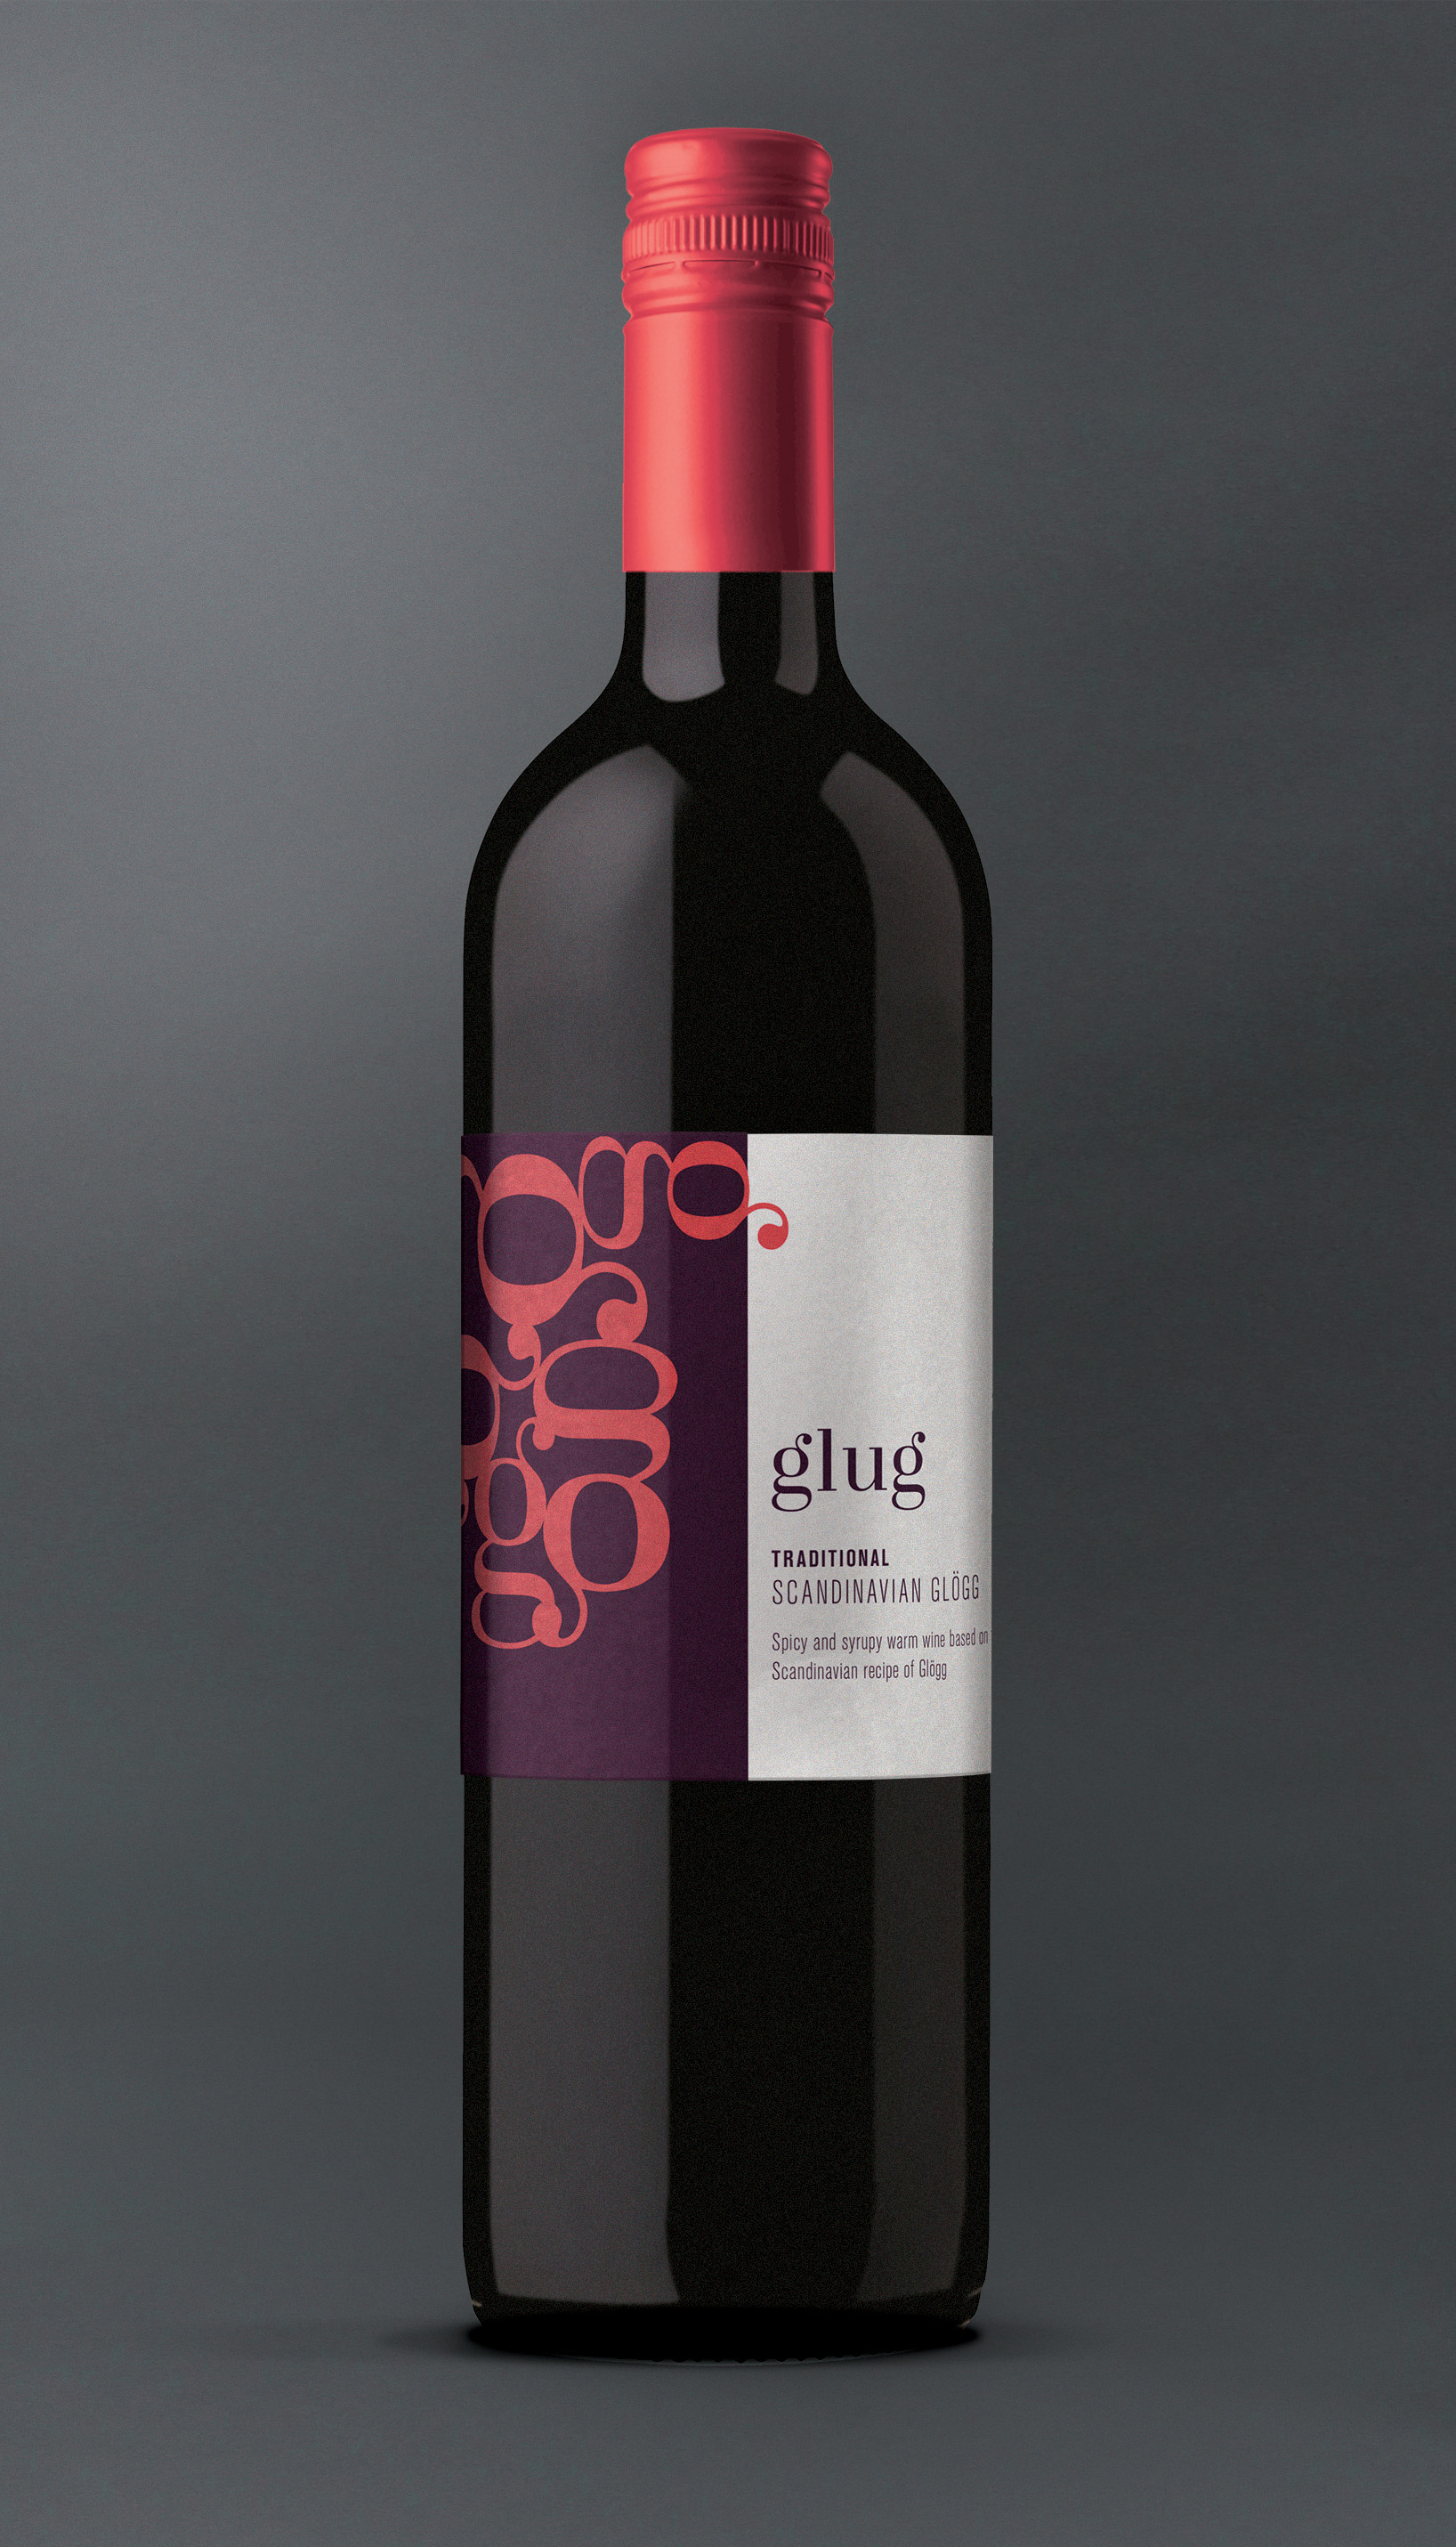 Jenni Doran, Our Revolution, Wine Label Design, Packaging Design, Branding Design